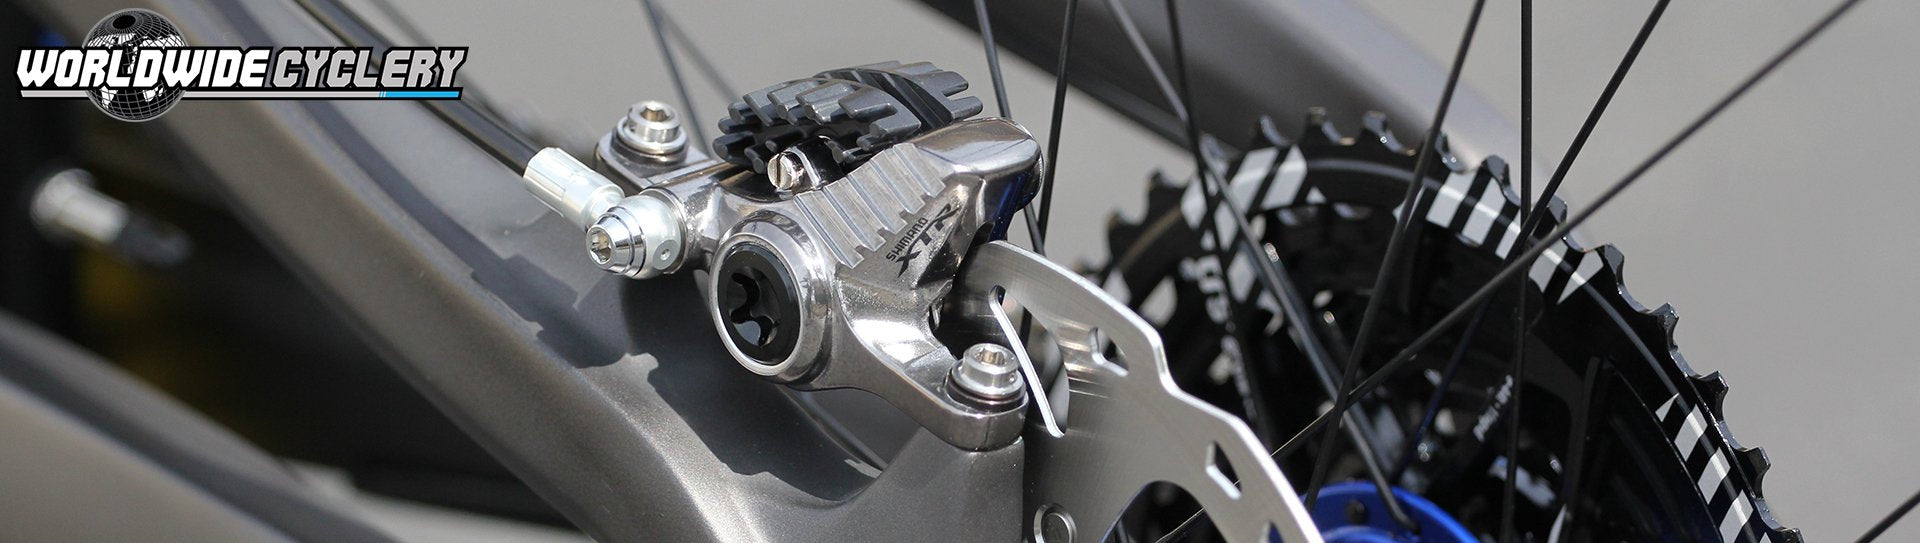 Video Sram Brakes Vs Shimano General Differences Mtb And This Diagram Explains The Various Parts That Make Up A Disc Braking